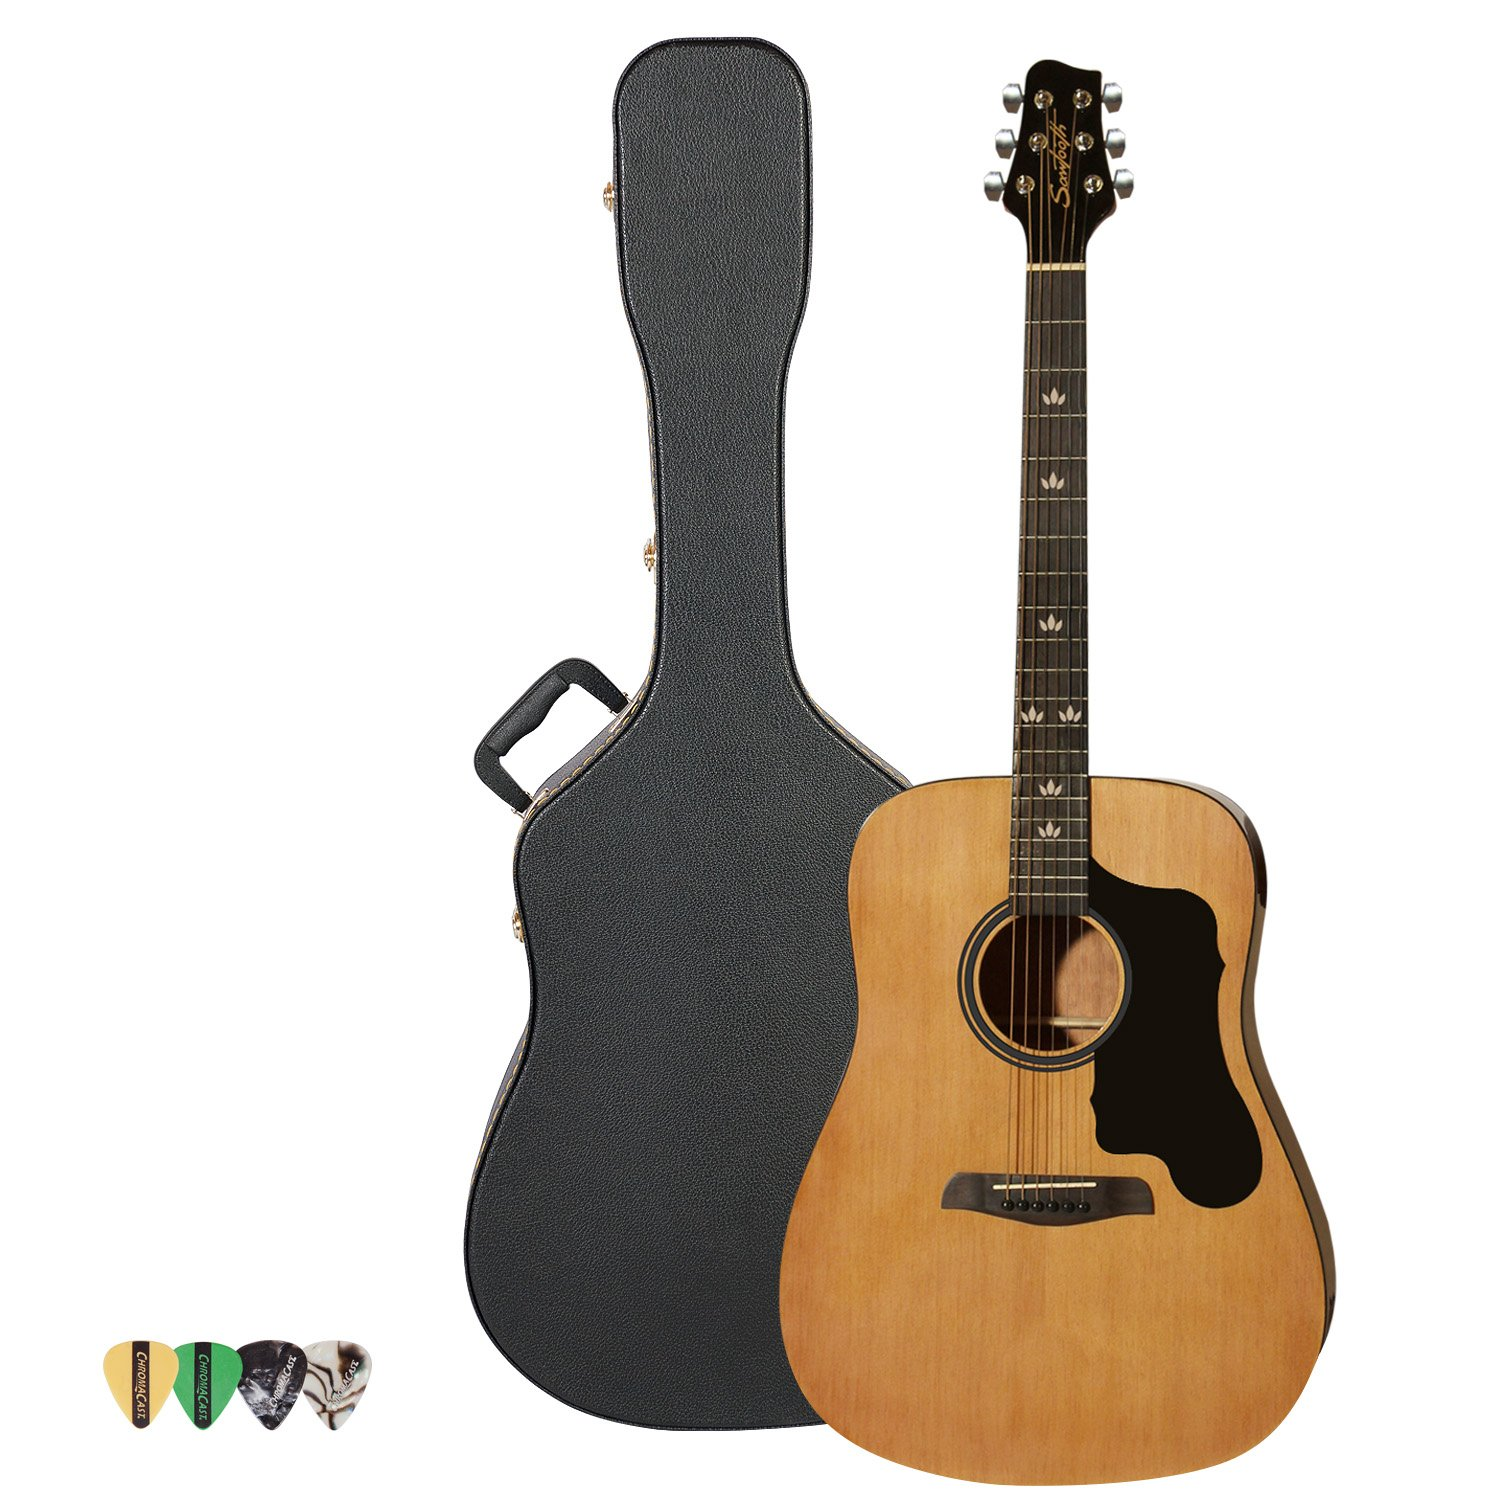 Sawtooth Acoustic Guitar with Black Pickguard - Includes: Picks & Hard Case